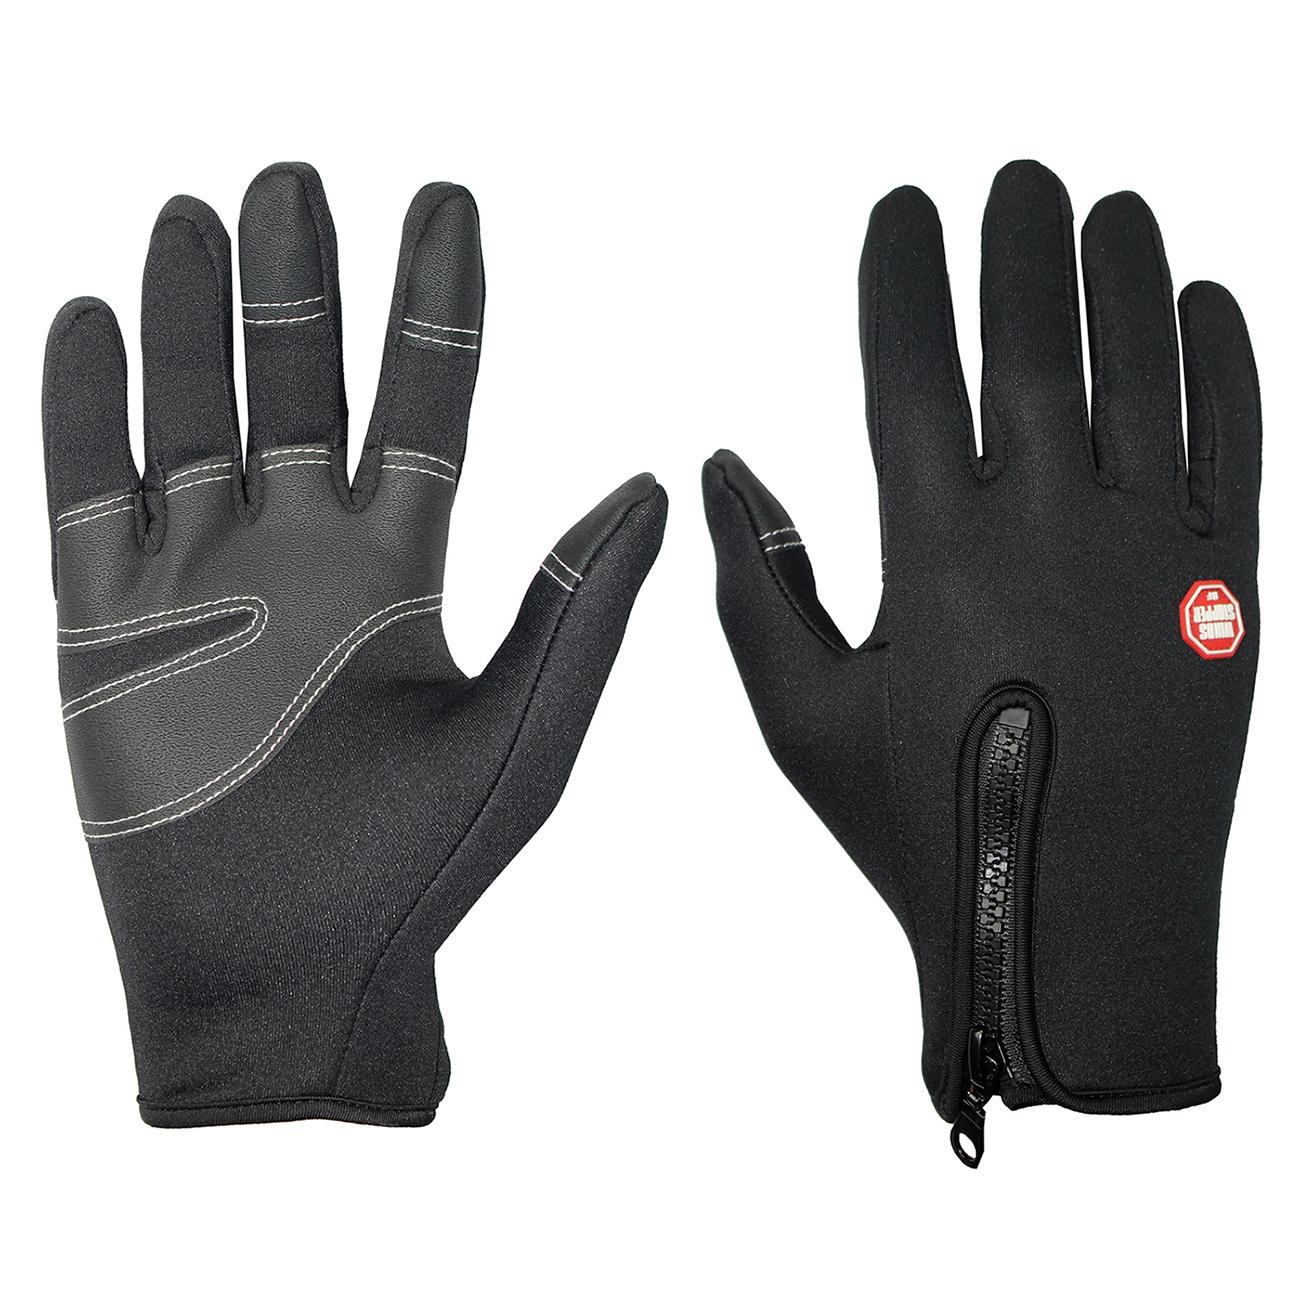 355c04bc546a7 Men's Gloves In Nepal At Best Prices - Daraz.com.np